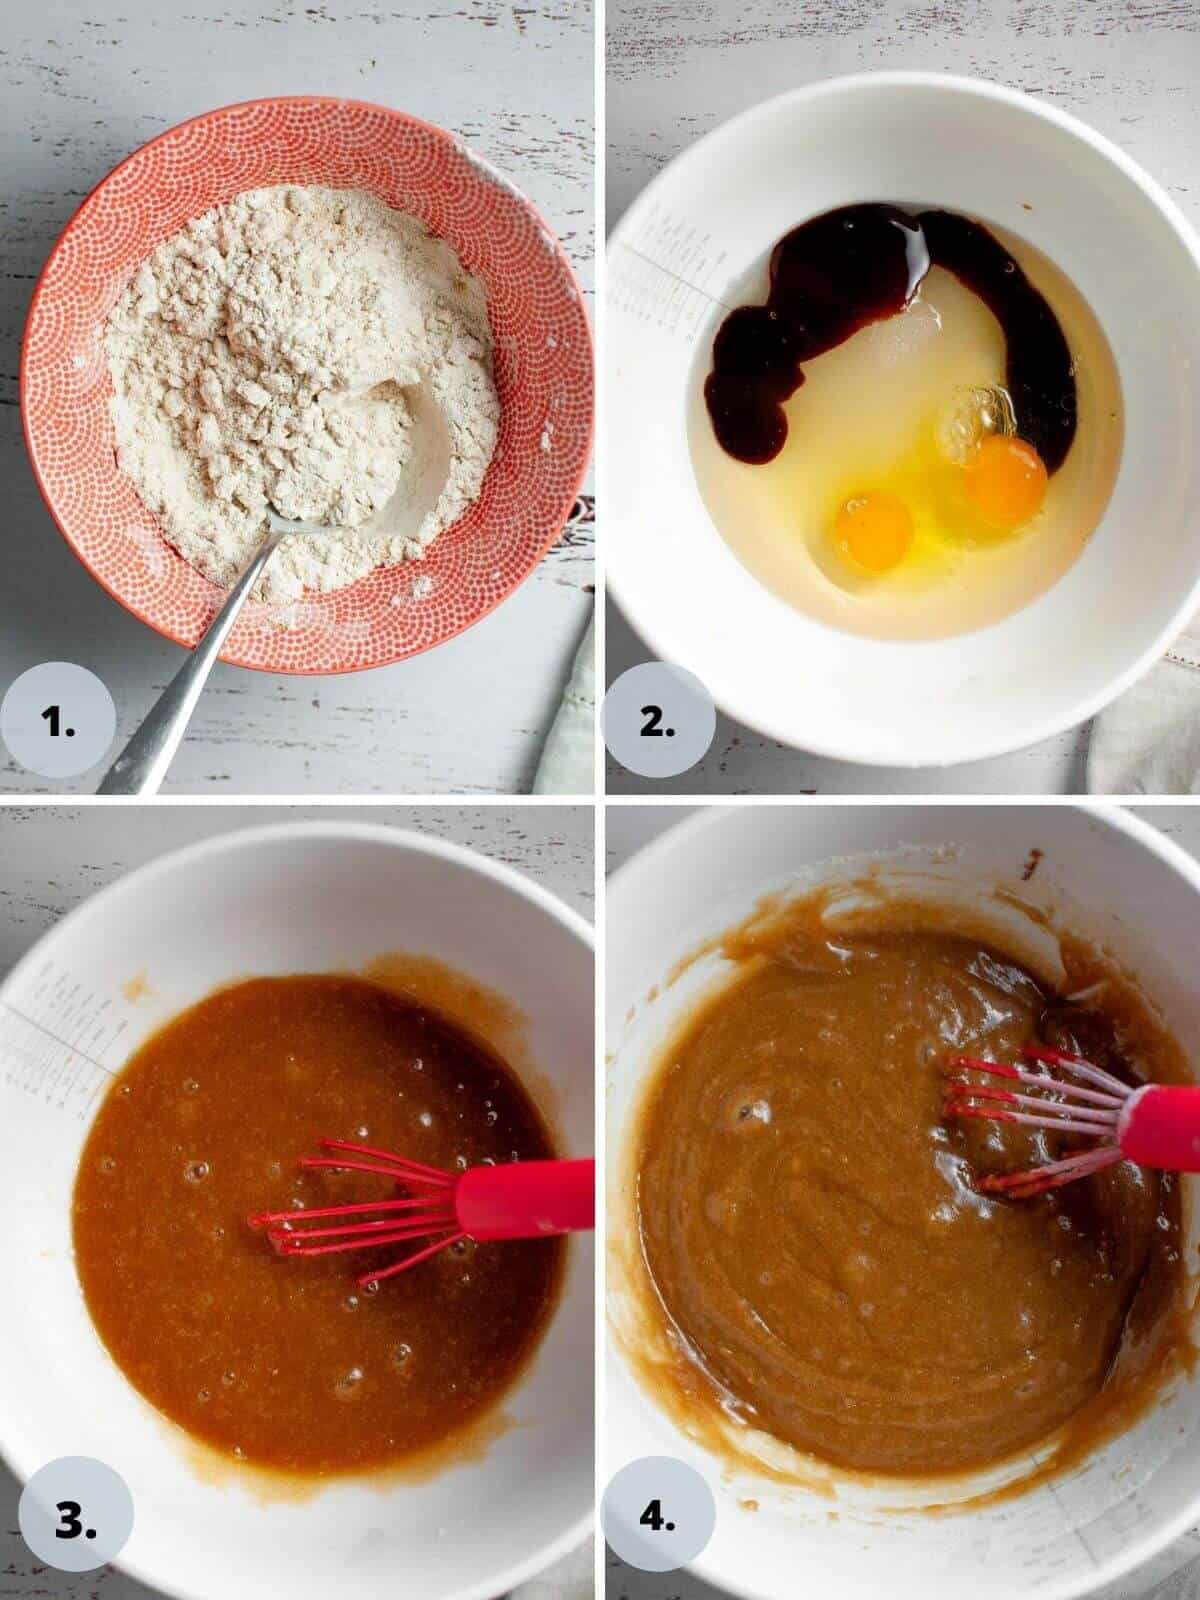 Steps 1 to 4 of making the cake batter